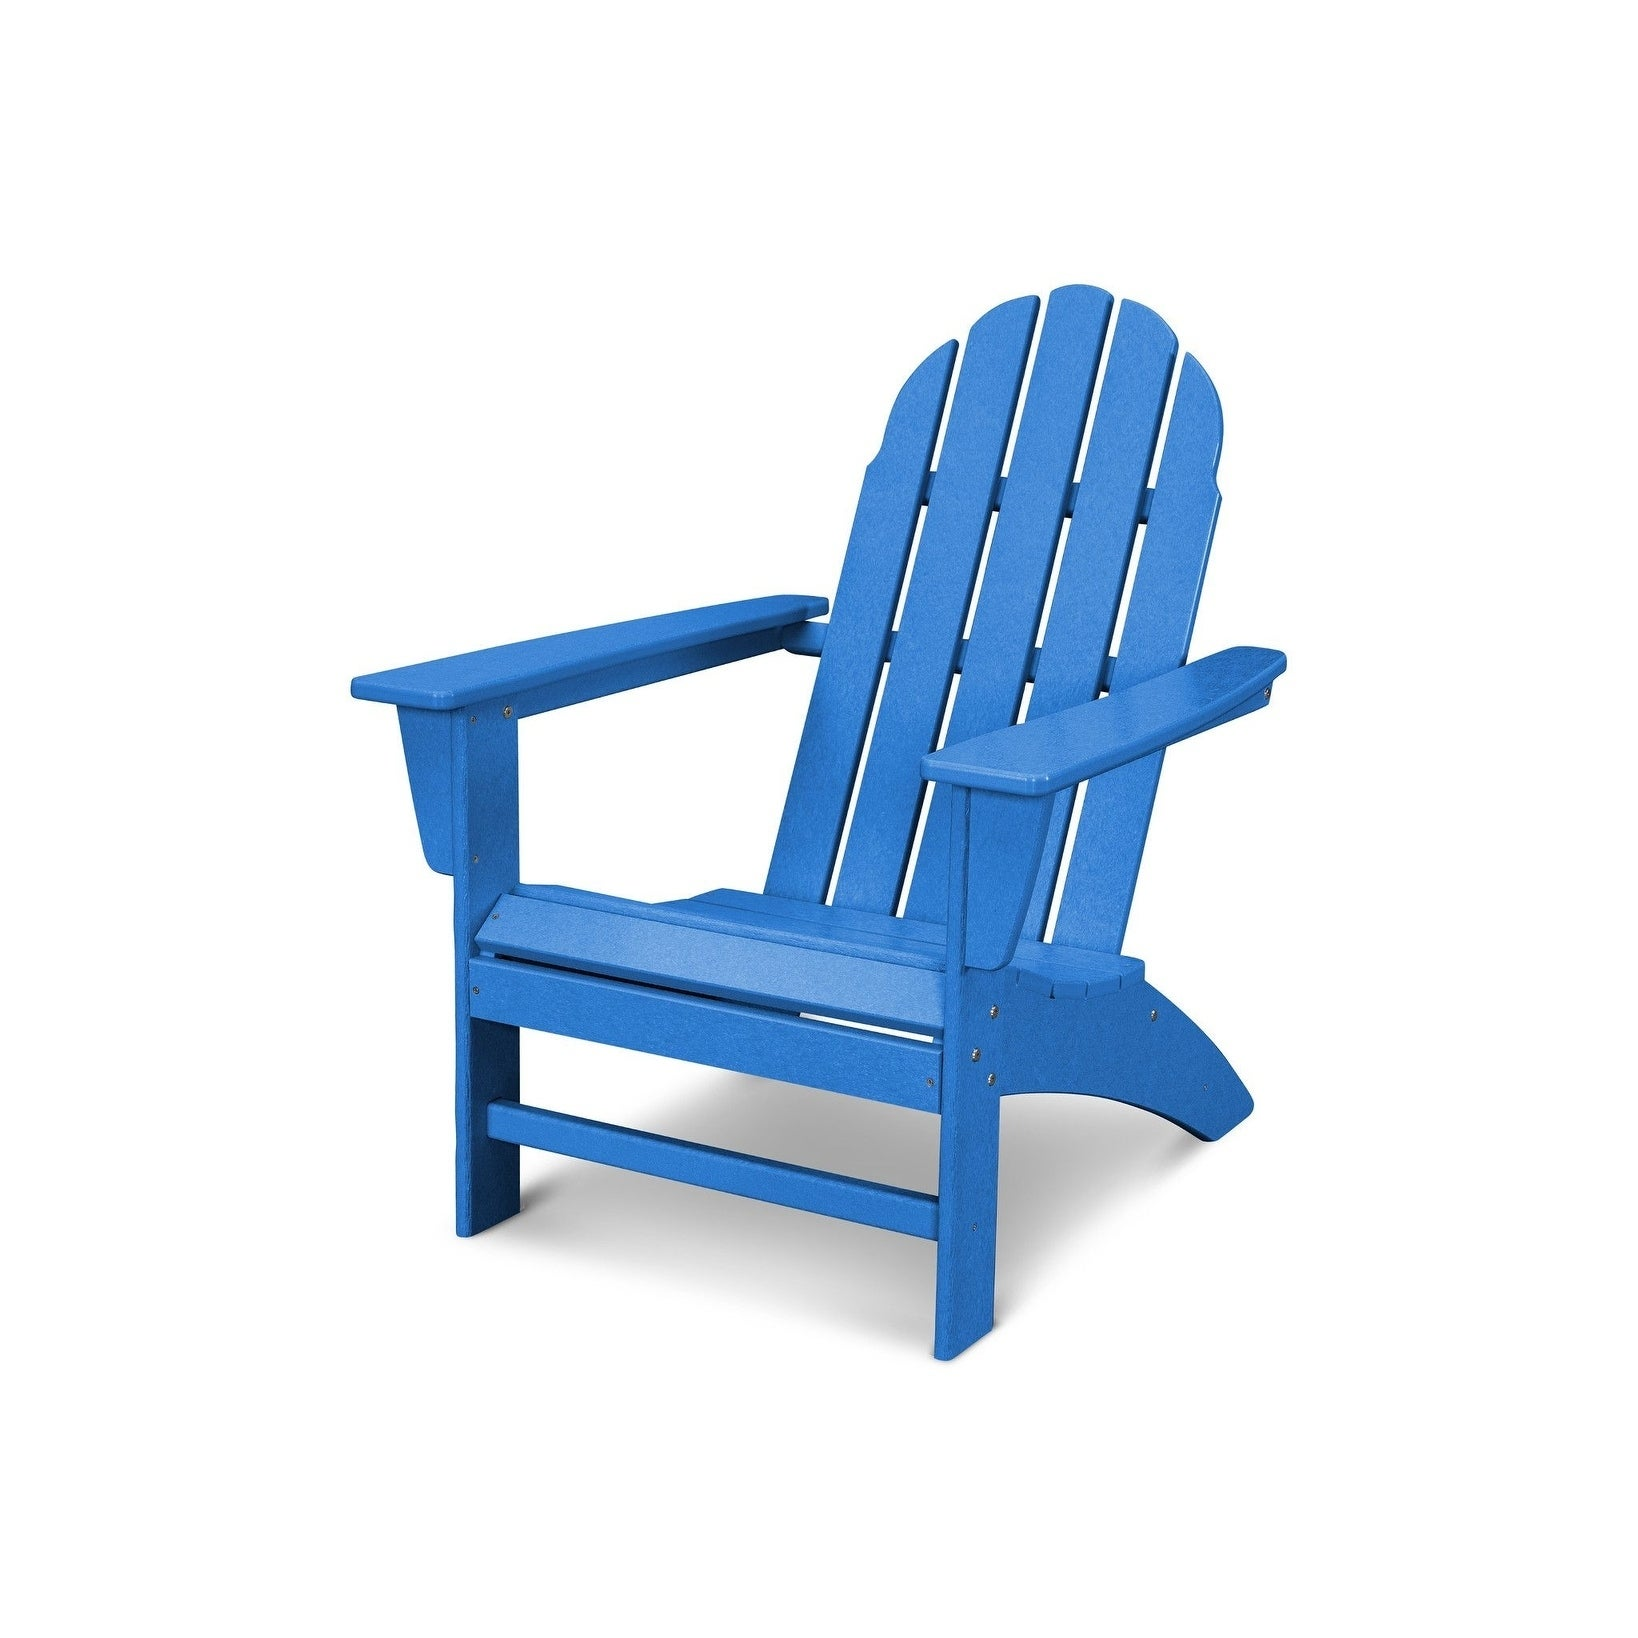 Shop POLYWOOD Vineyard Outdoor Adirondack Chair   Free Shipping Today    Overstock.com   20489699